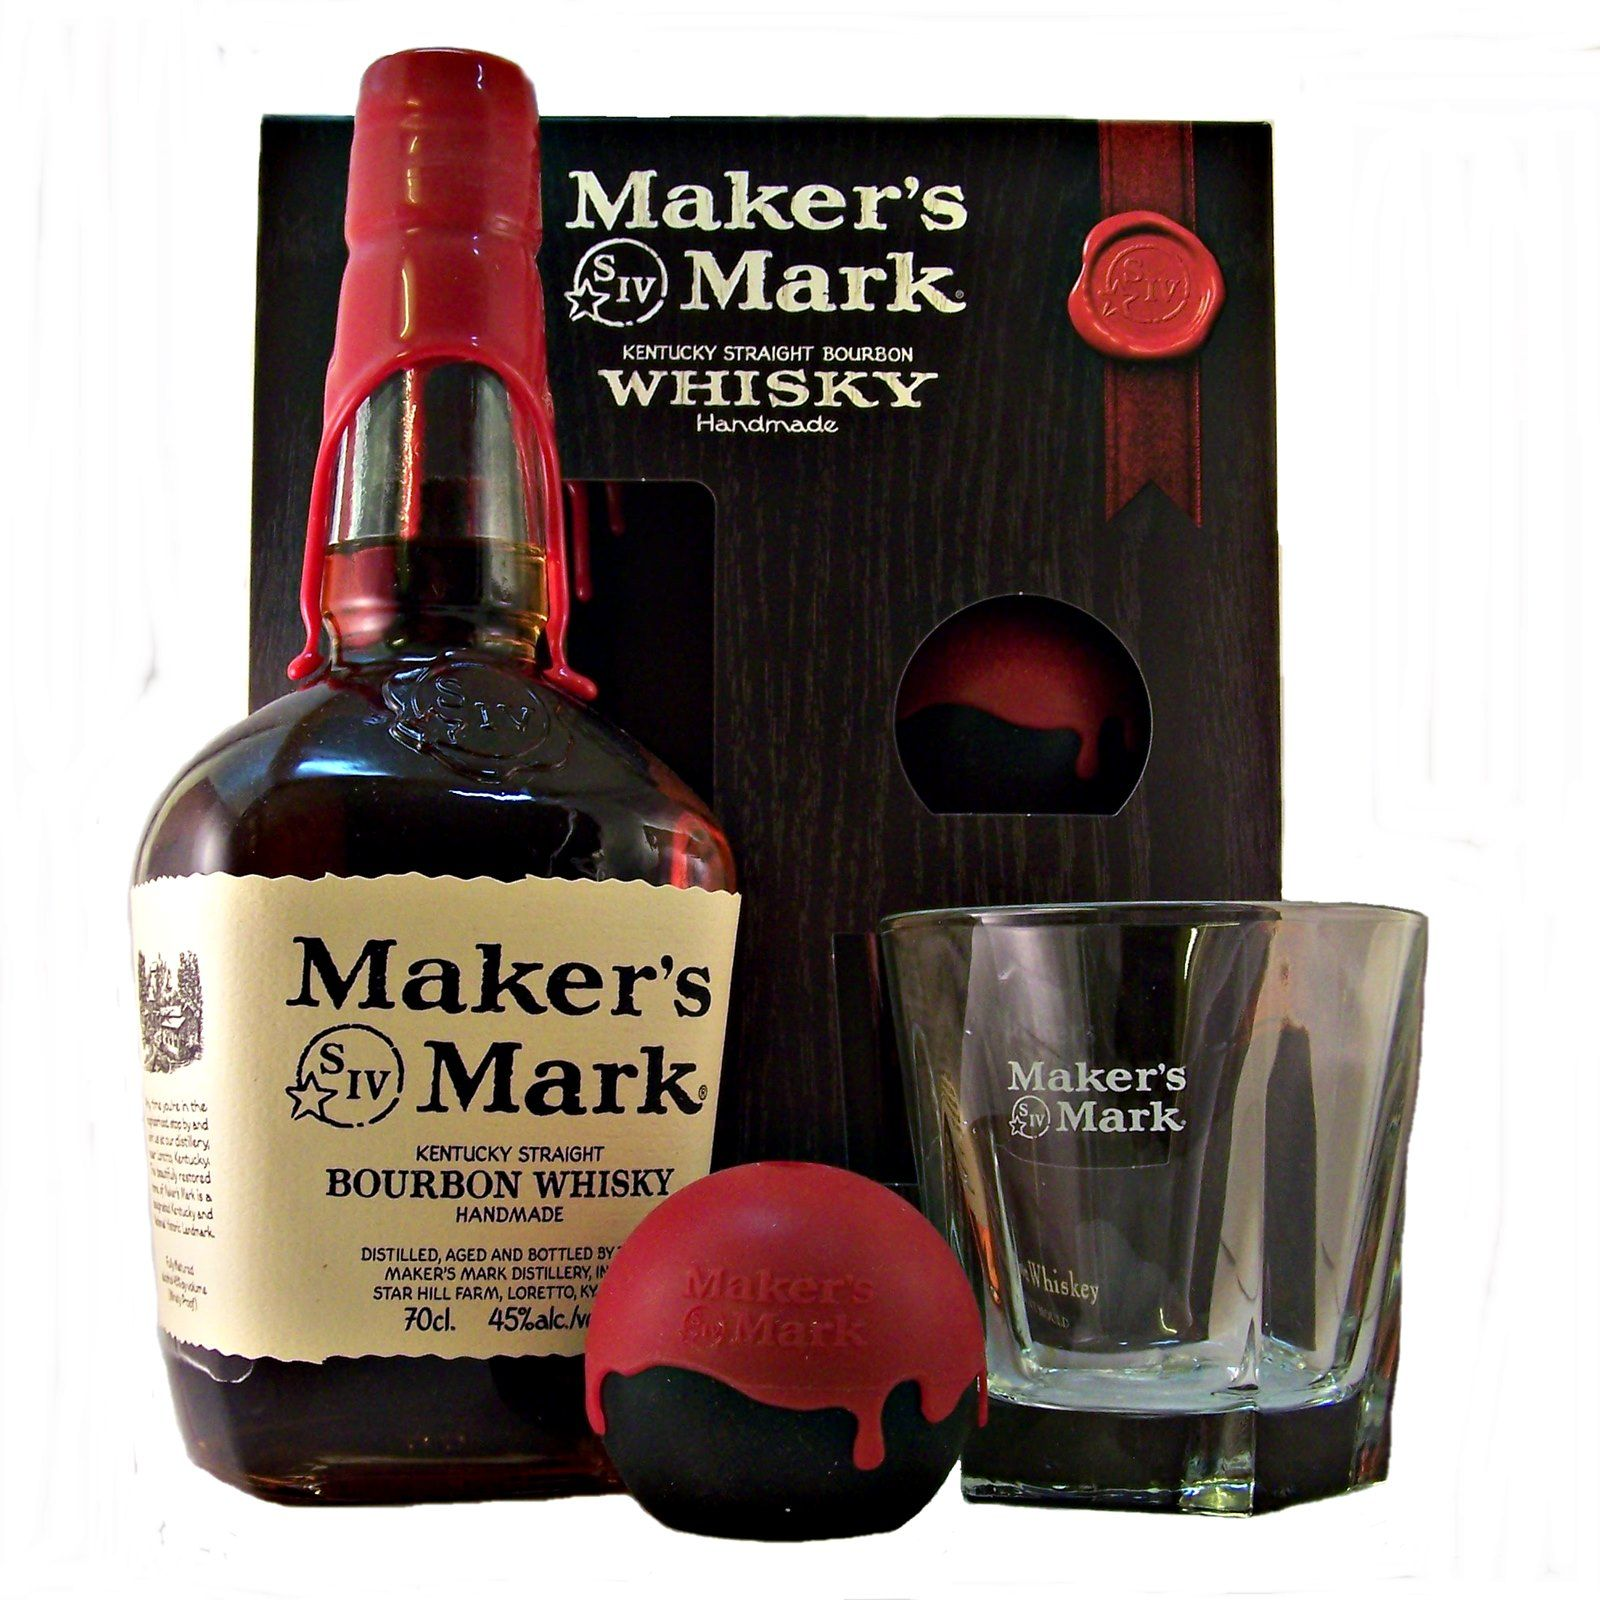 Makers Mark Bourbon Gift Pack containing a bottle of Maker's Mark Kentucky Straight Bourbon Whiskey a tumbler and an ice mould buy online at whiskys.co.uk